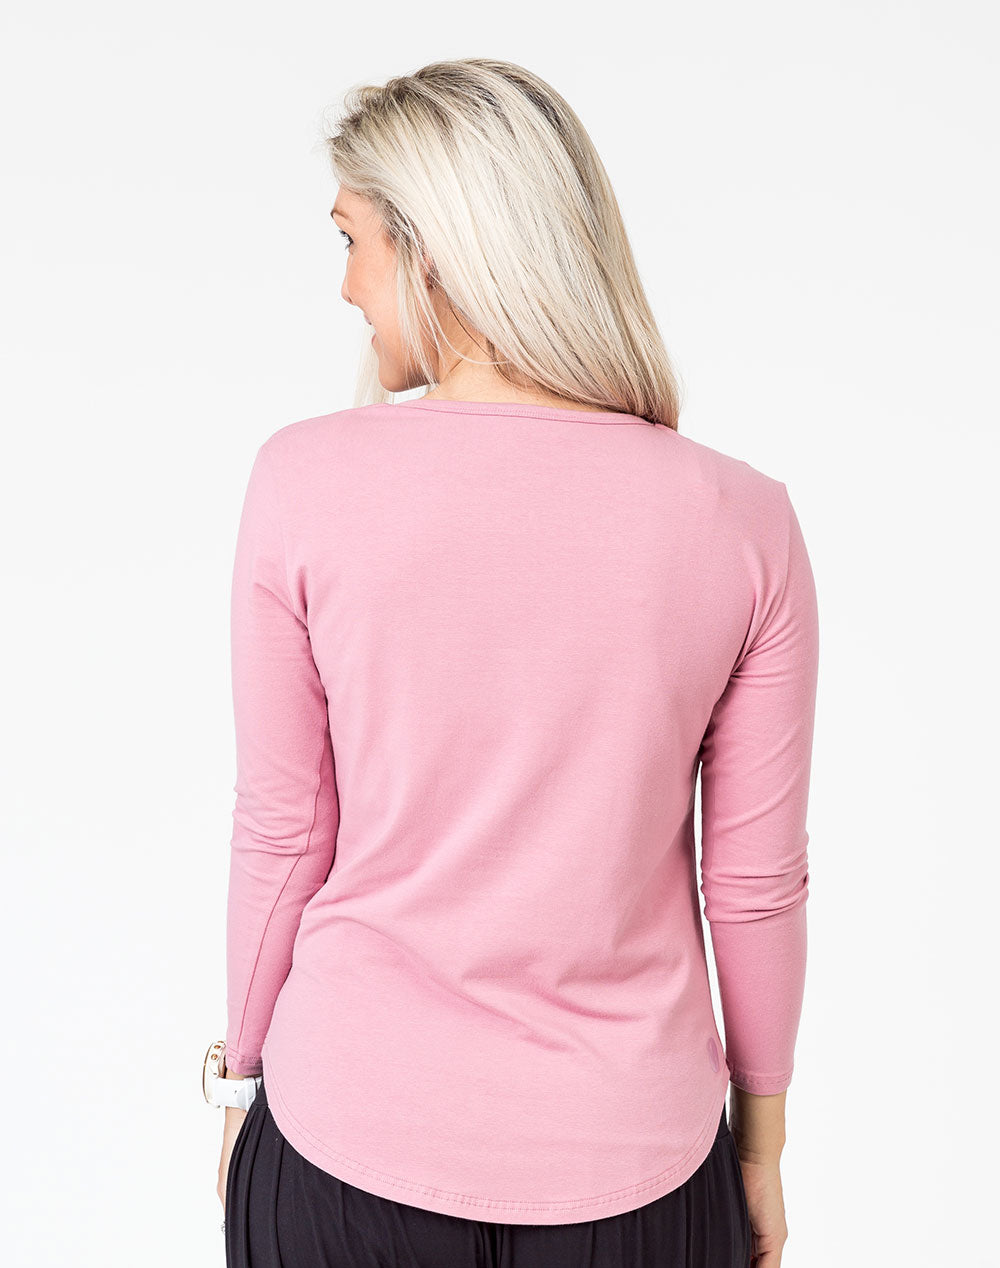 back view of a mum in a pink maternity top with long sleeves